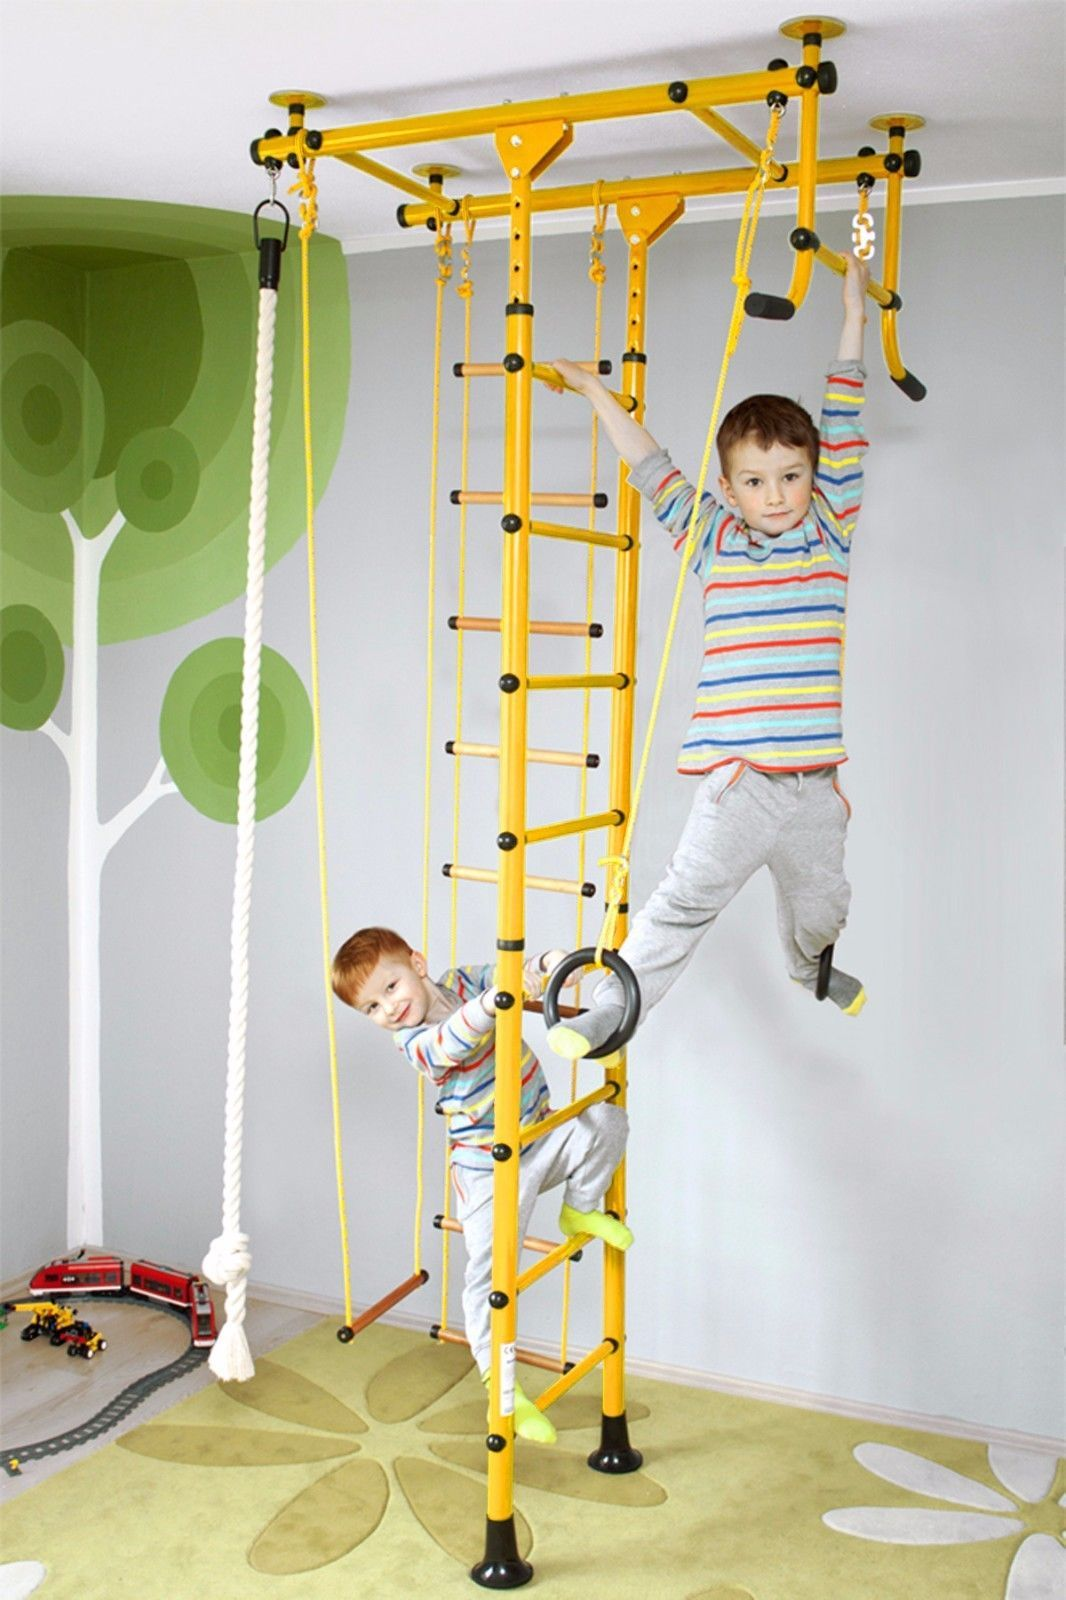 Indoor Wall bars Climbing frame Kids sports